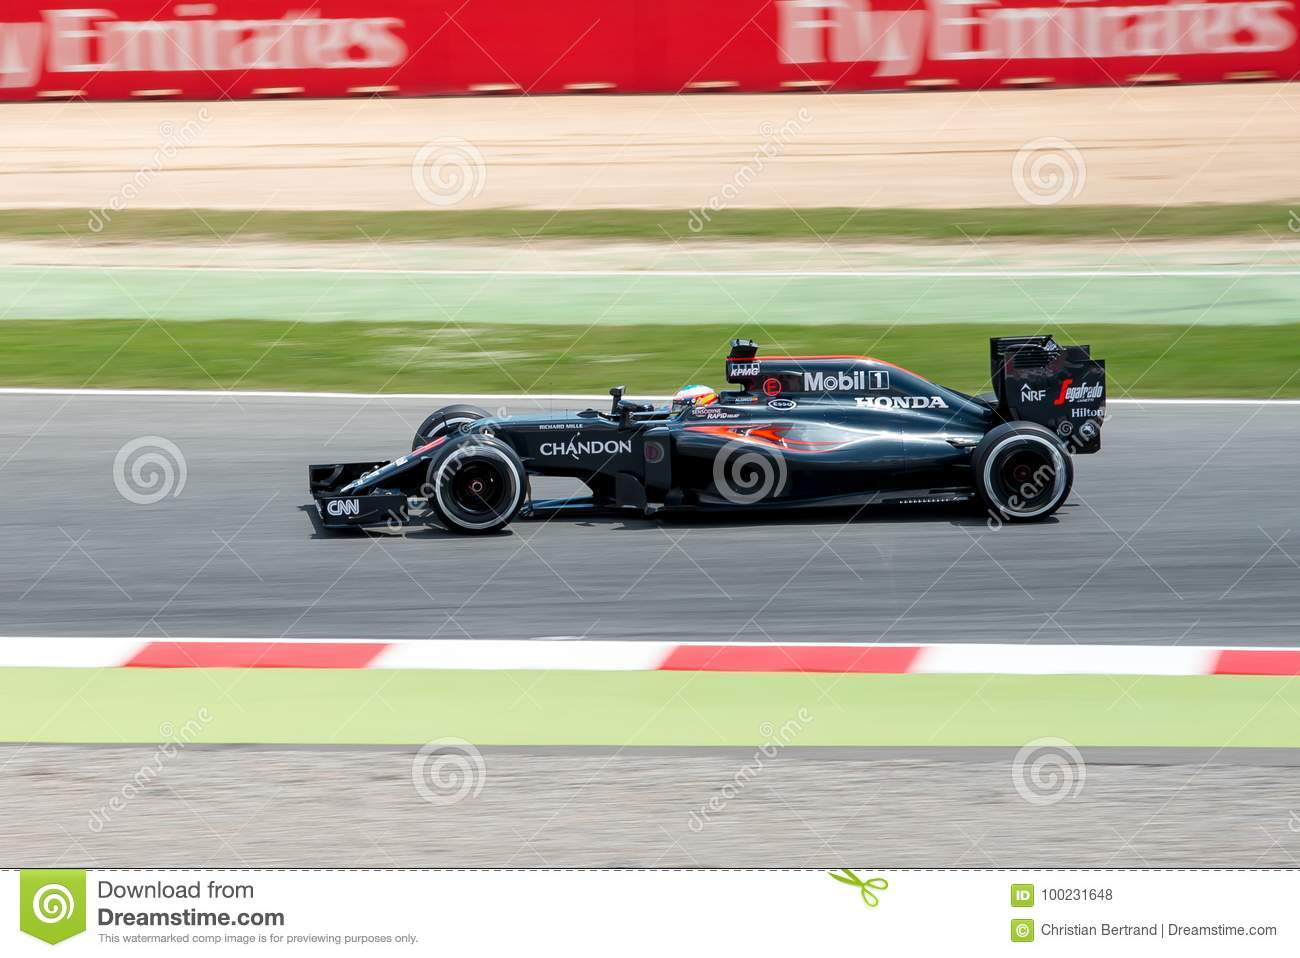 Fernando Alonso F1 Grand Prix Fernando Alonso Drives The Mclaren Honda F1 Team Car On Track For